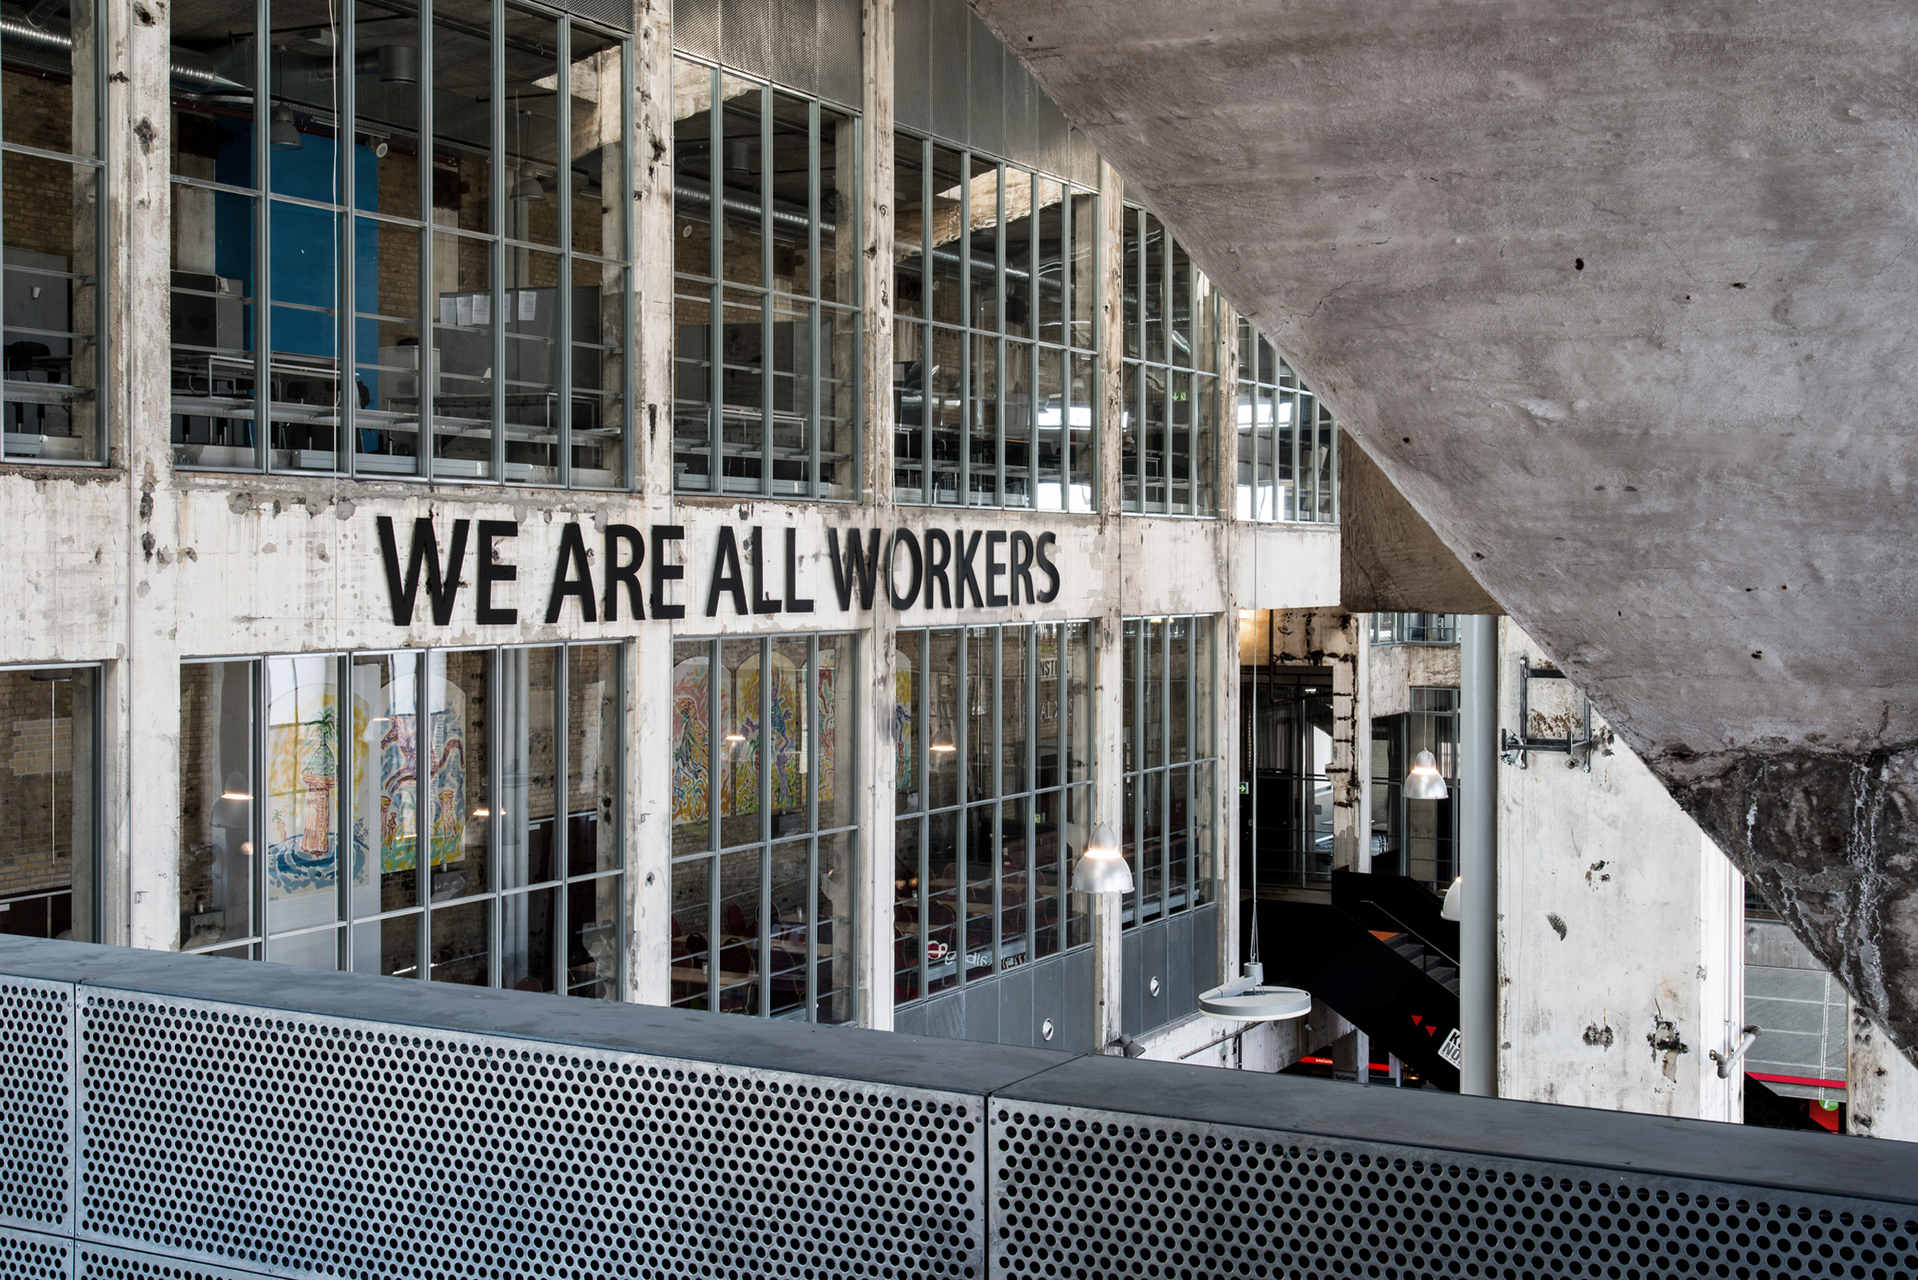 002_We Are All Workers_Niels Fabaek